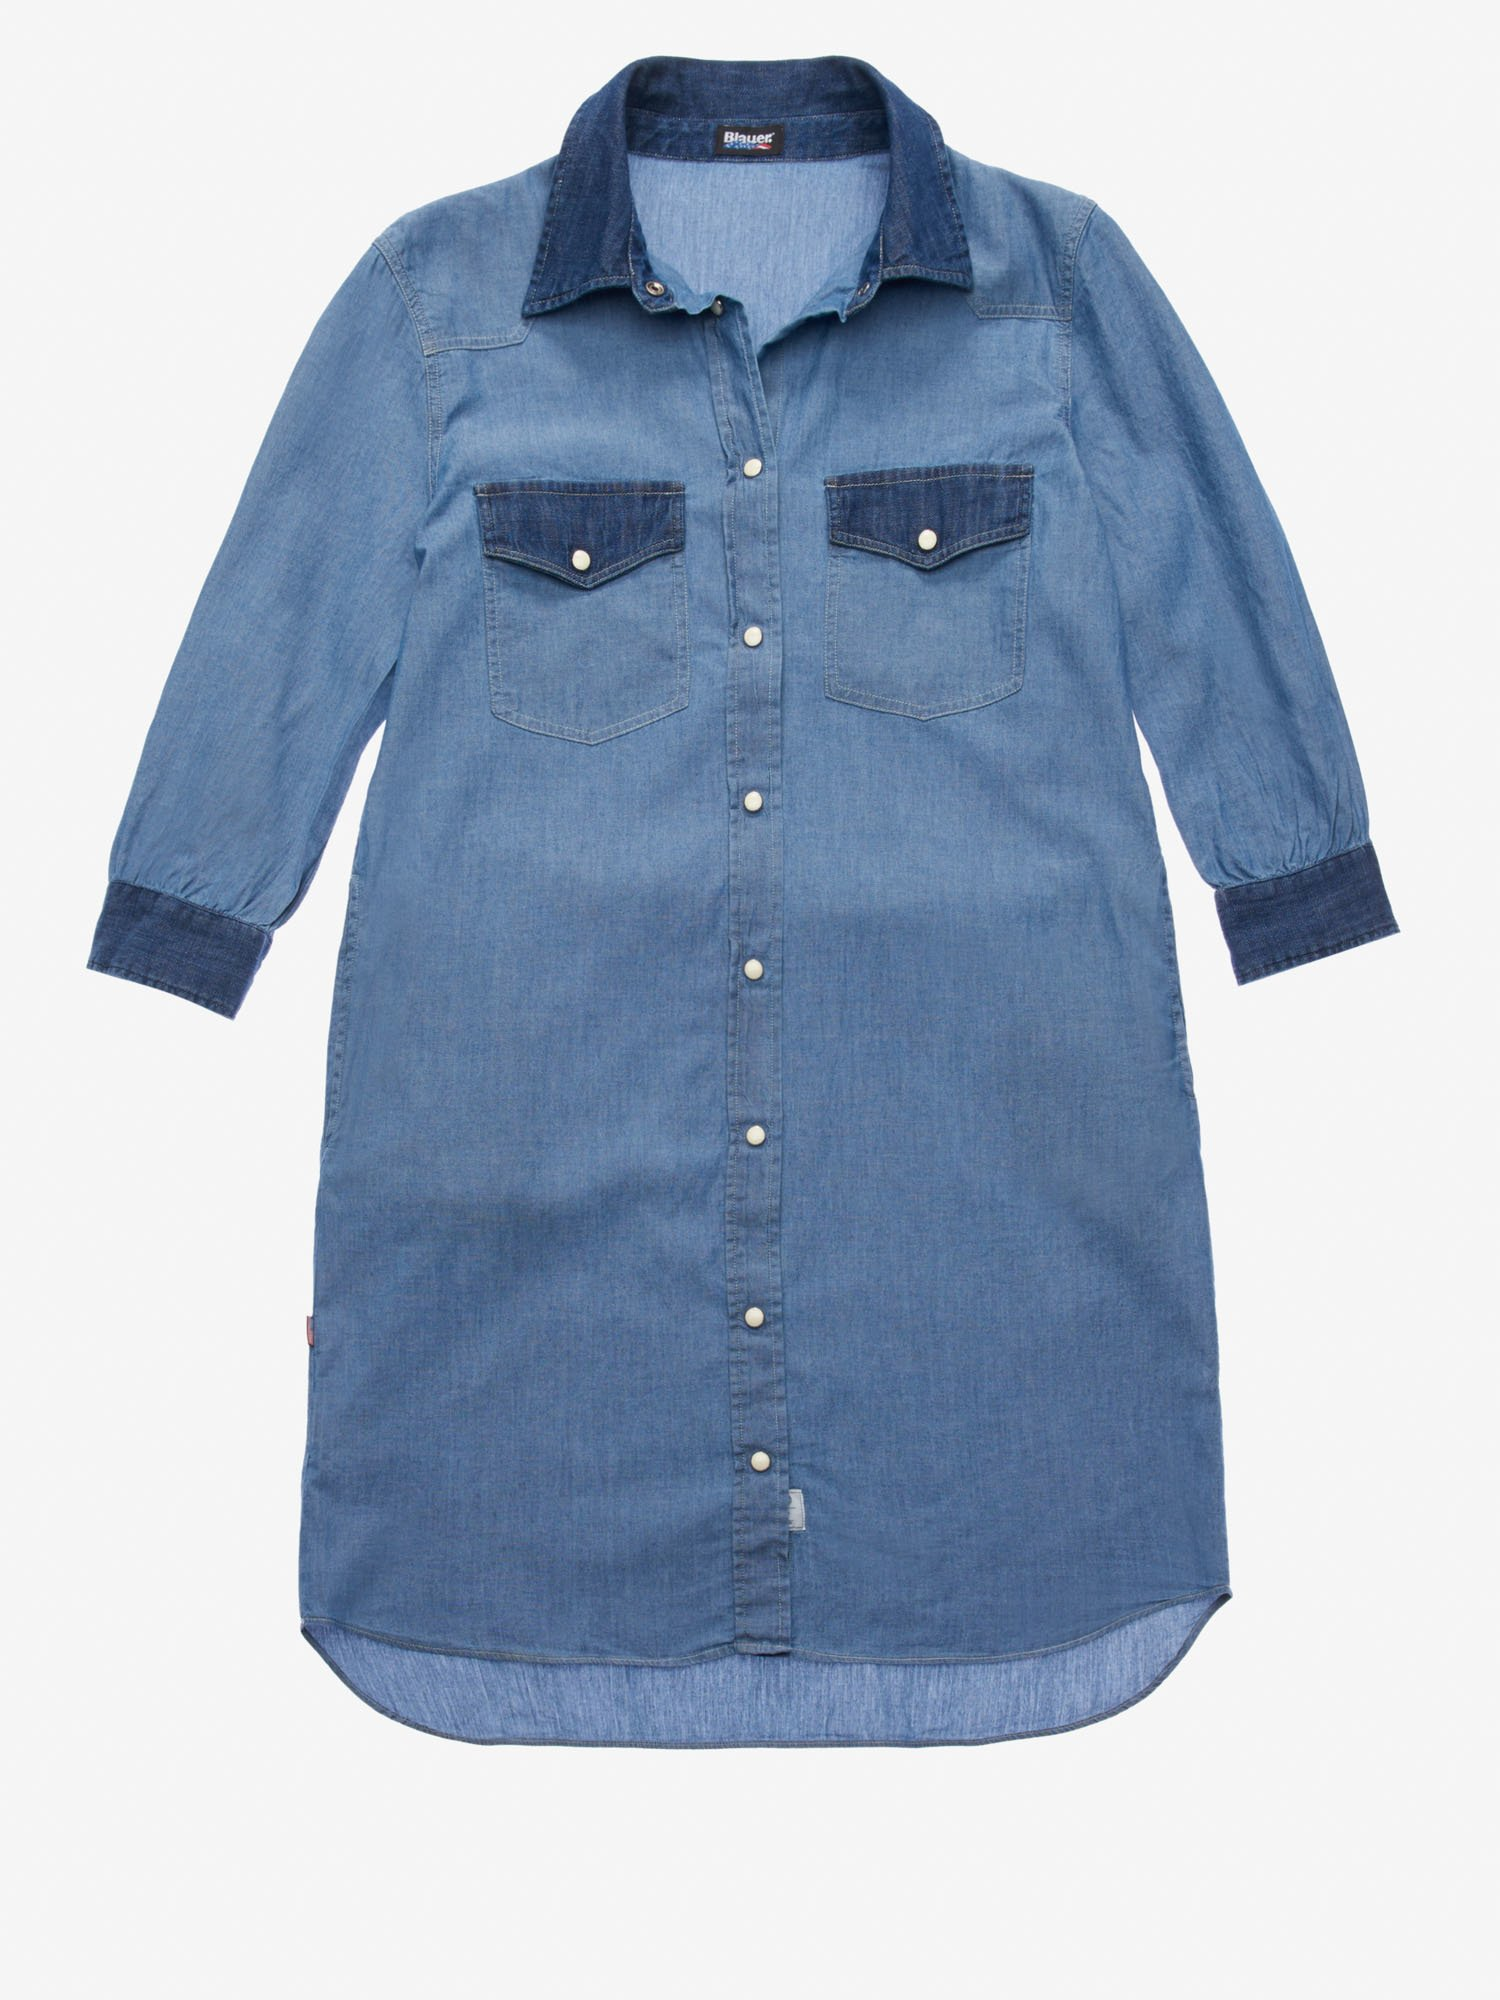 CHAMBRAY AND DENIM DRESS - Blauer